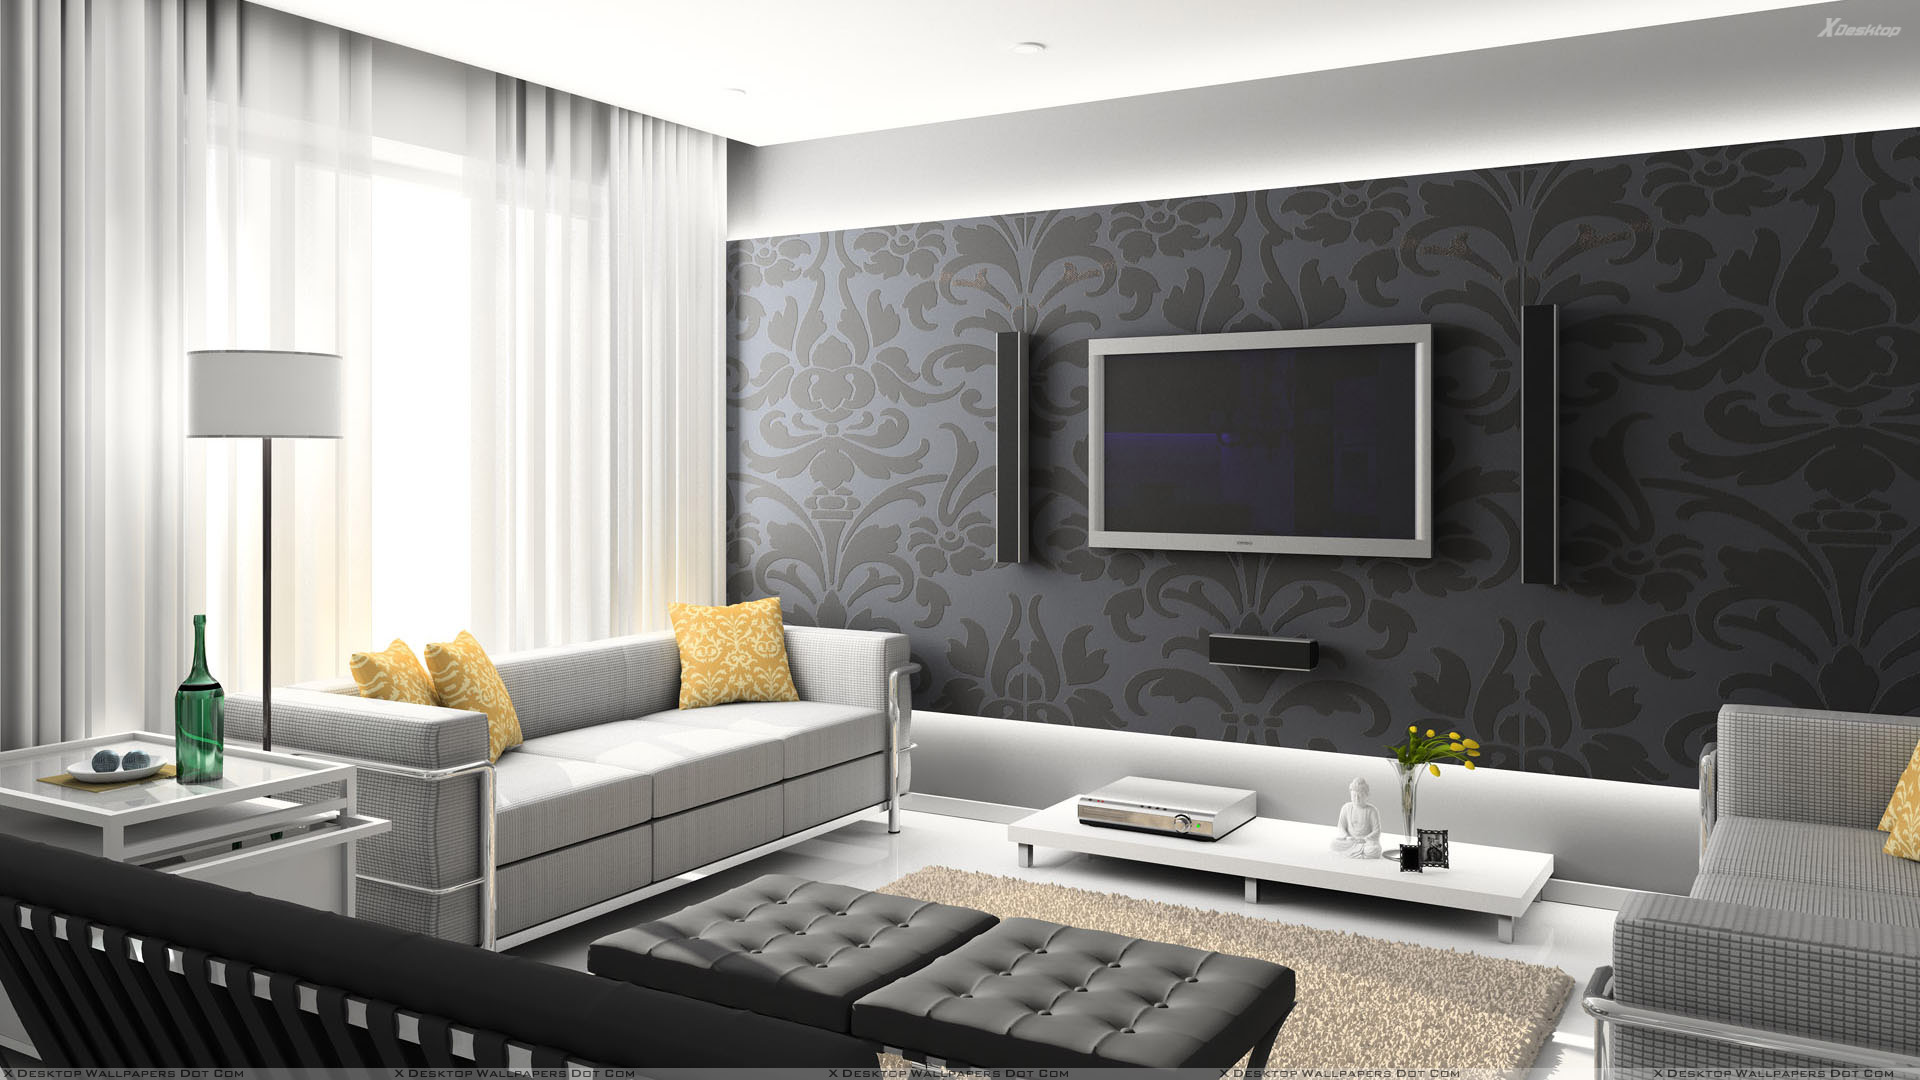 Black Digital Interior And Home Theater Room Wallpaper. Sales On Living Room Furniture. Different Living Room Arrangements. Value City Living Room Furniture. Floor Seating Living Room. Open Concept Living Room. Vinyl Flooring Living Room. Ways To Rearrange Your Living Room. How To Decorate A Big Living Room